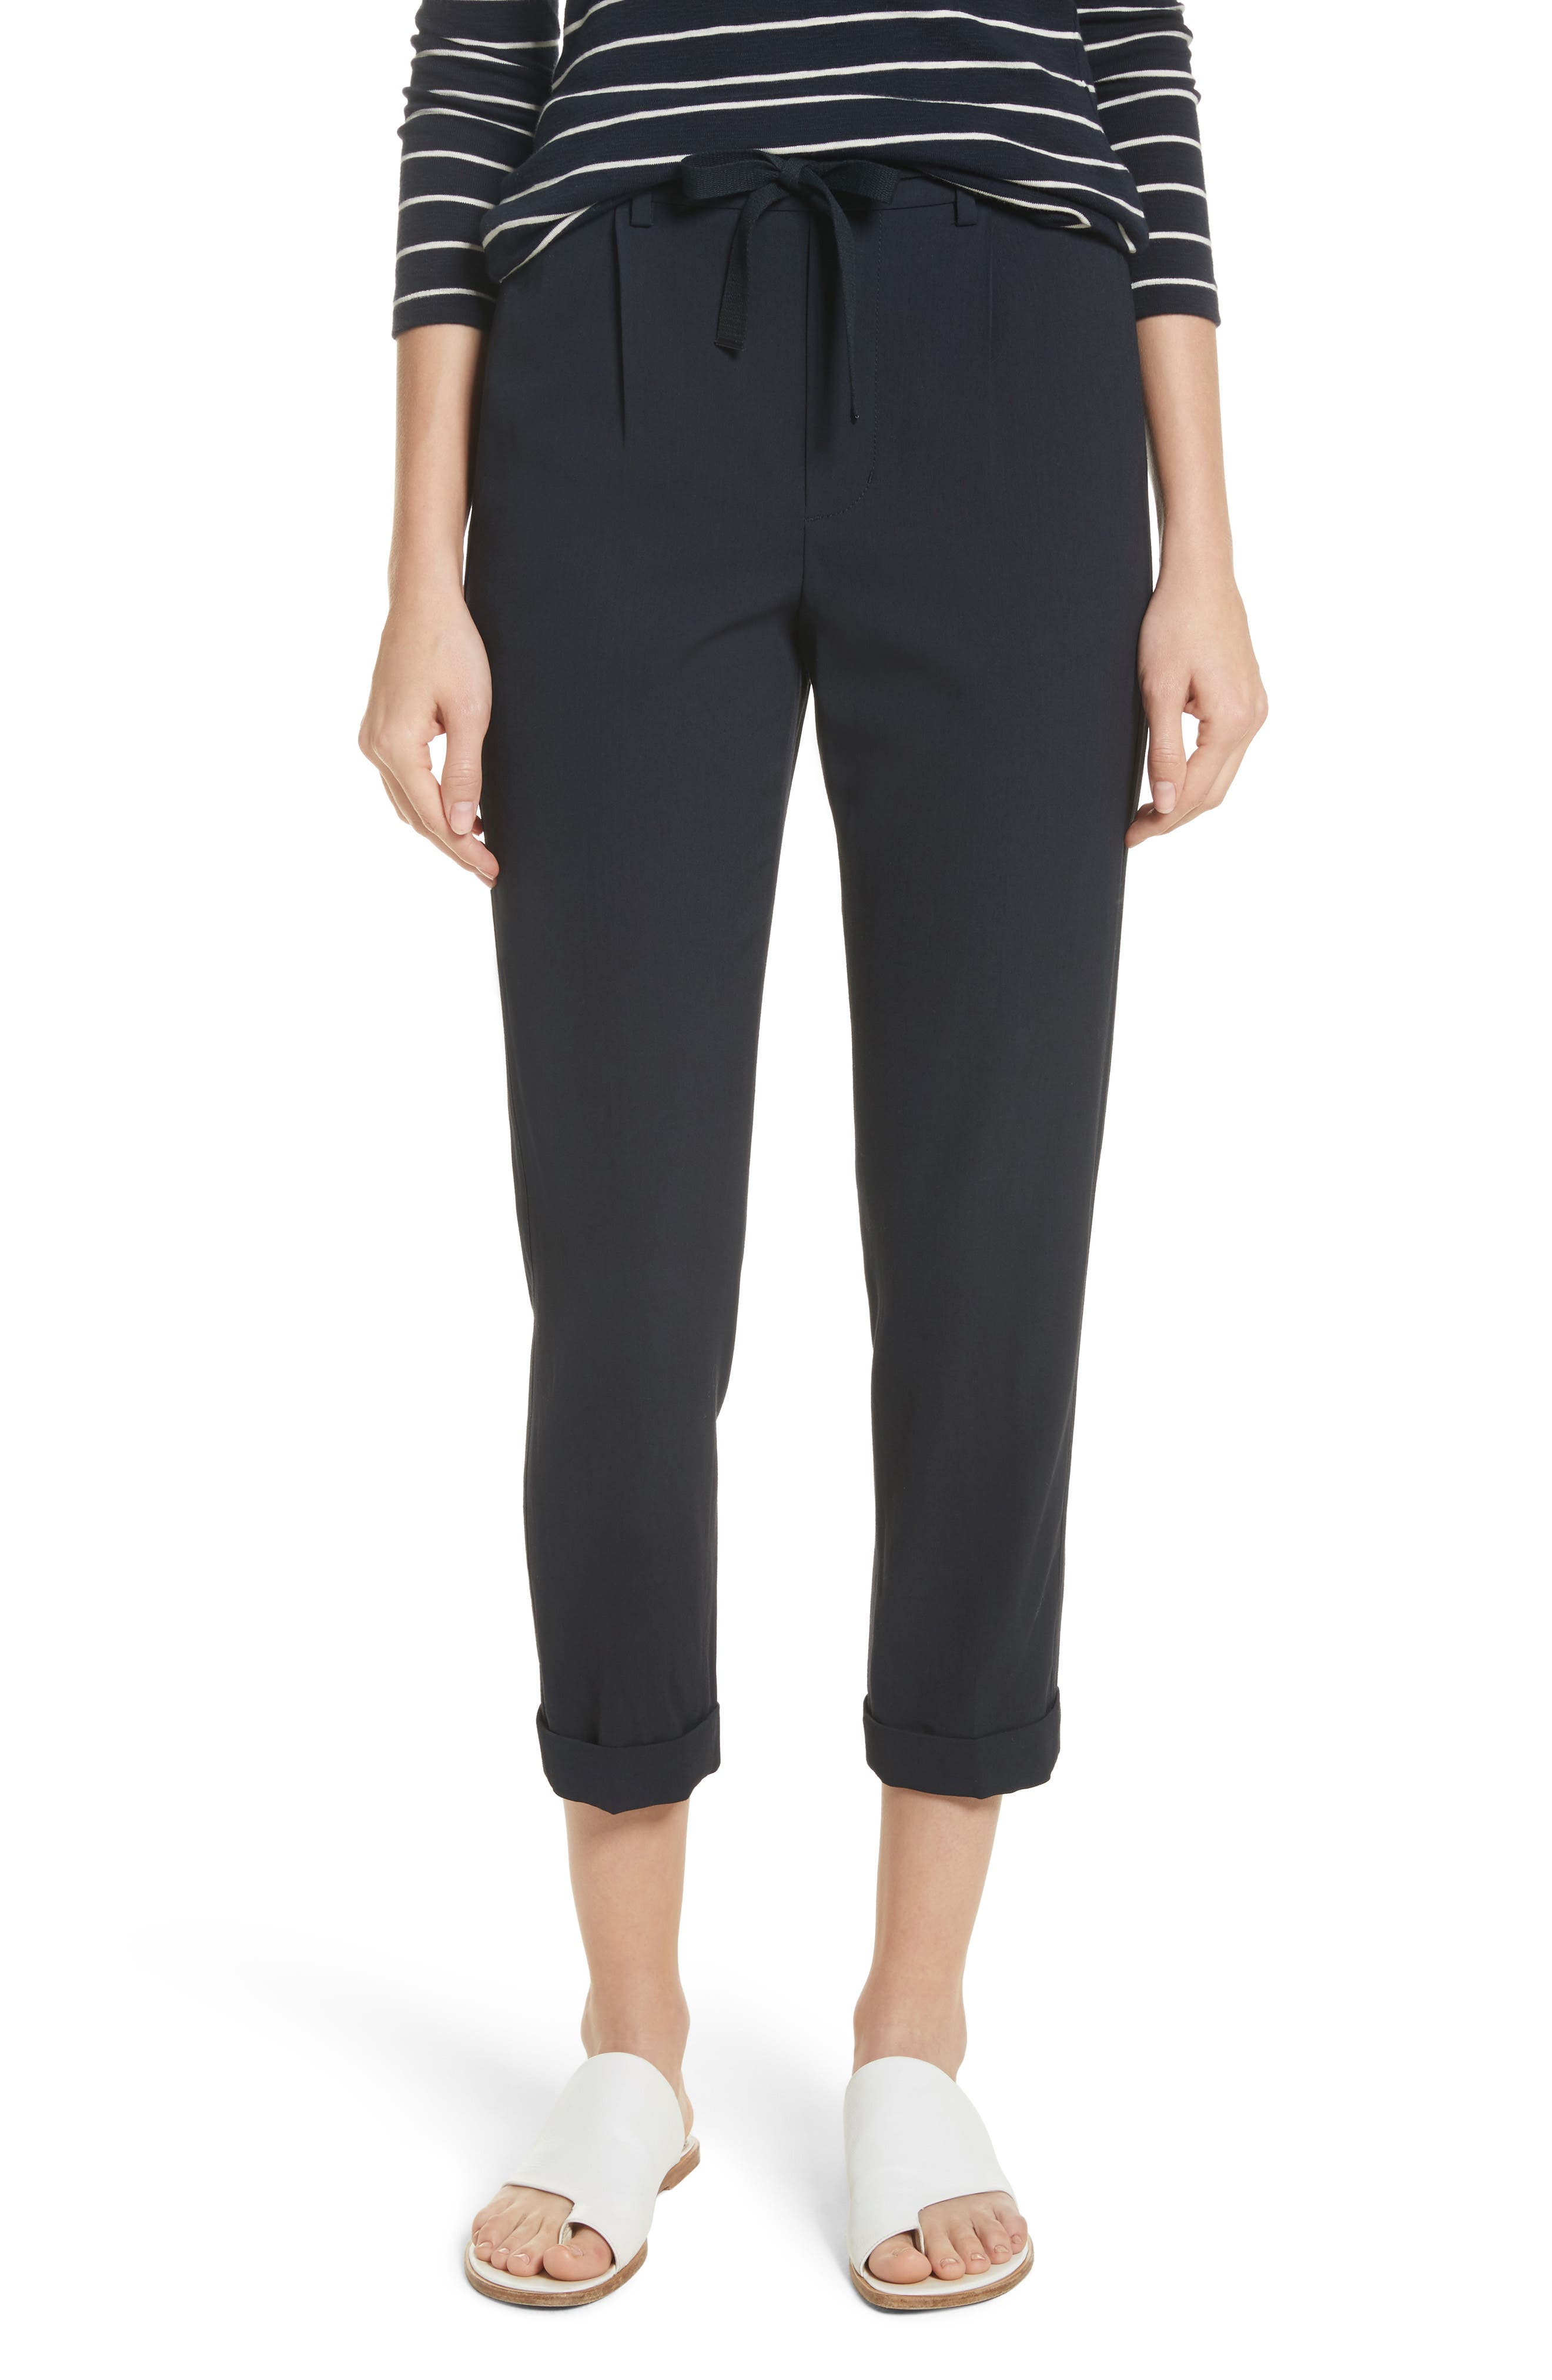 Alternate Image 1 Selected - Vince Side Strap Jogger Pants